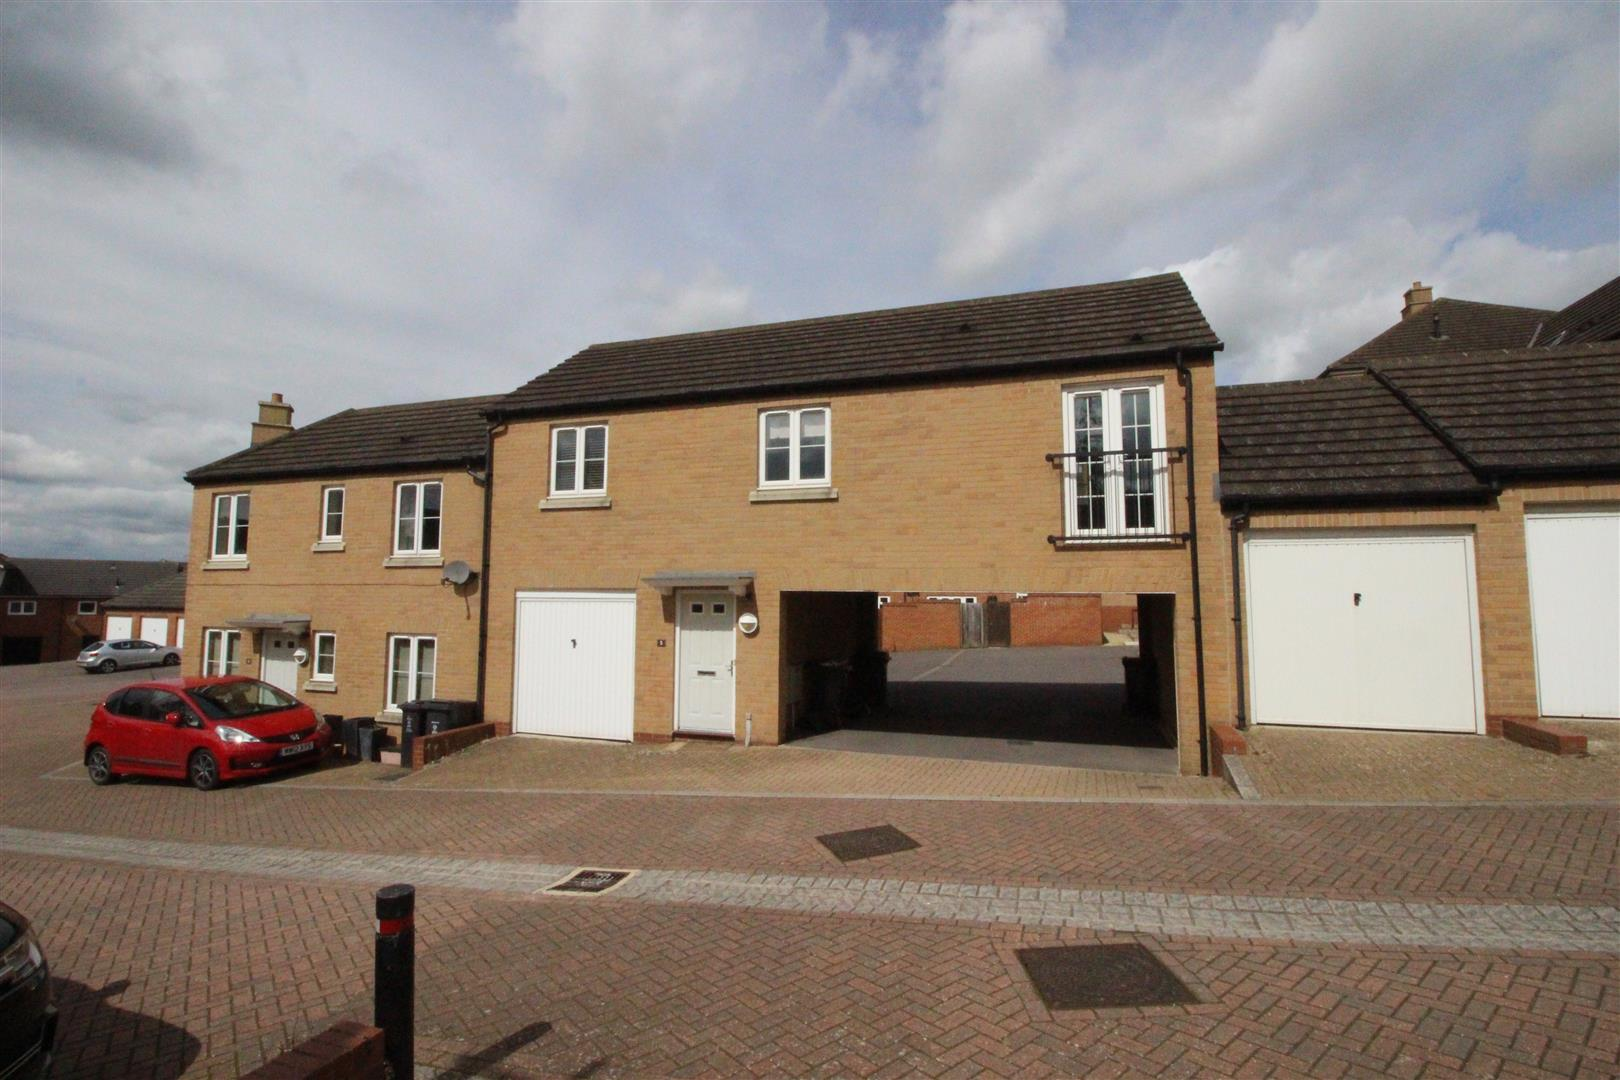 2 Bedrooms Terraced House for sale in Alwyn Court, Redhouse, Swindon